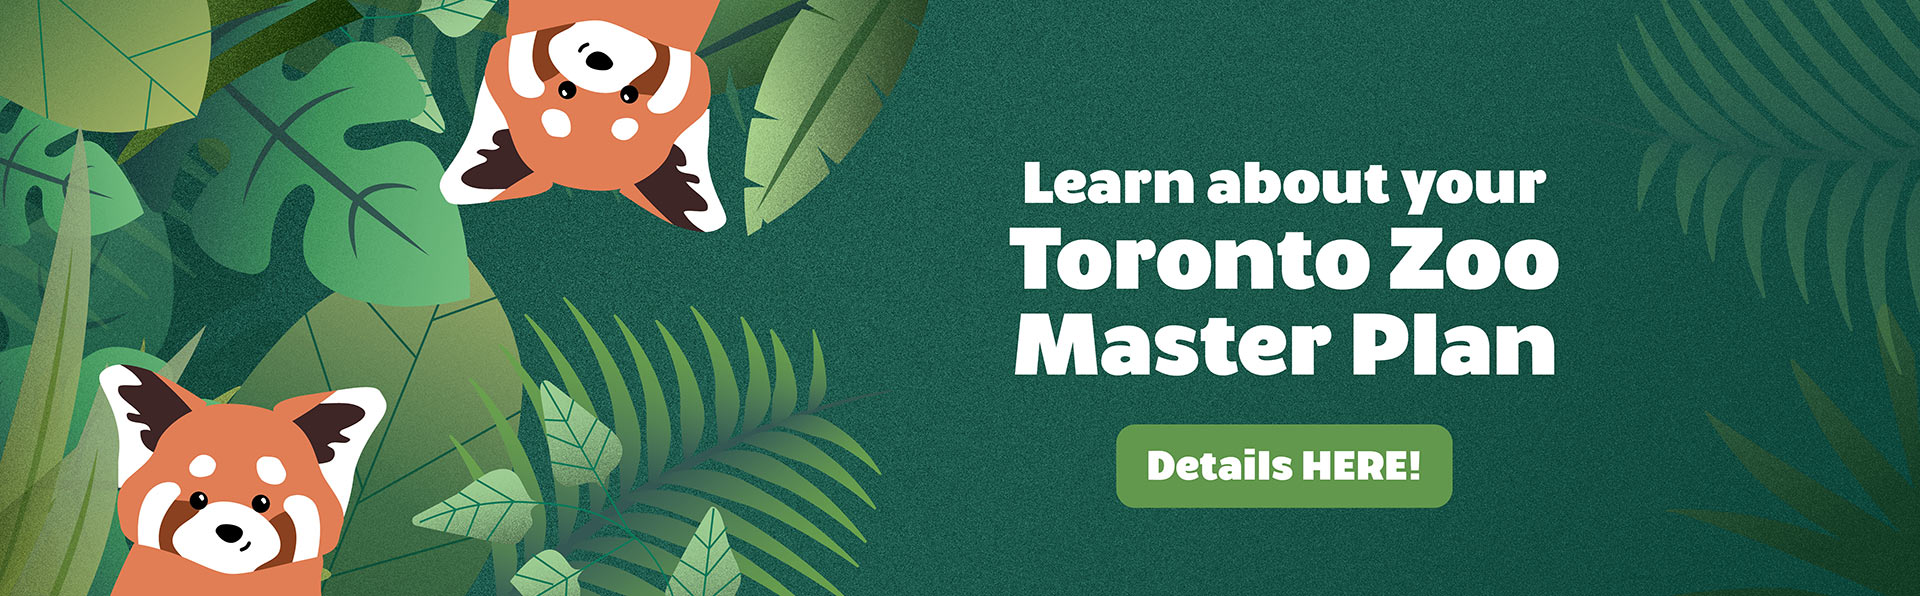 Learn about your Toronto Zoo Master Plan